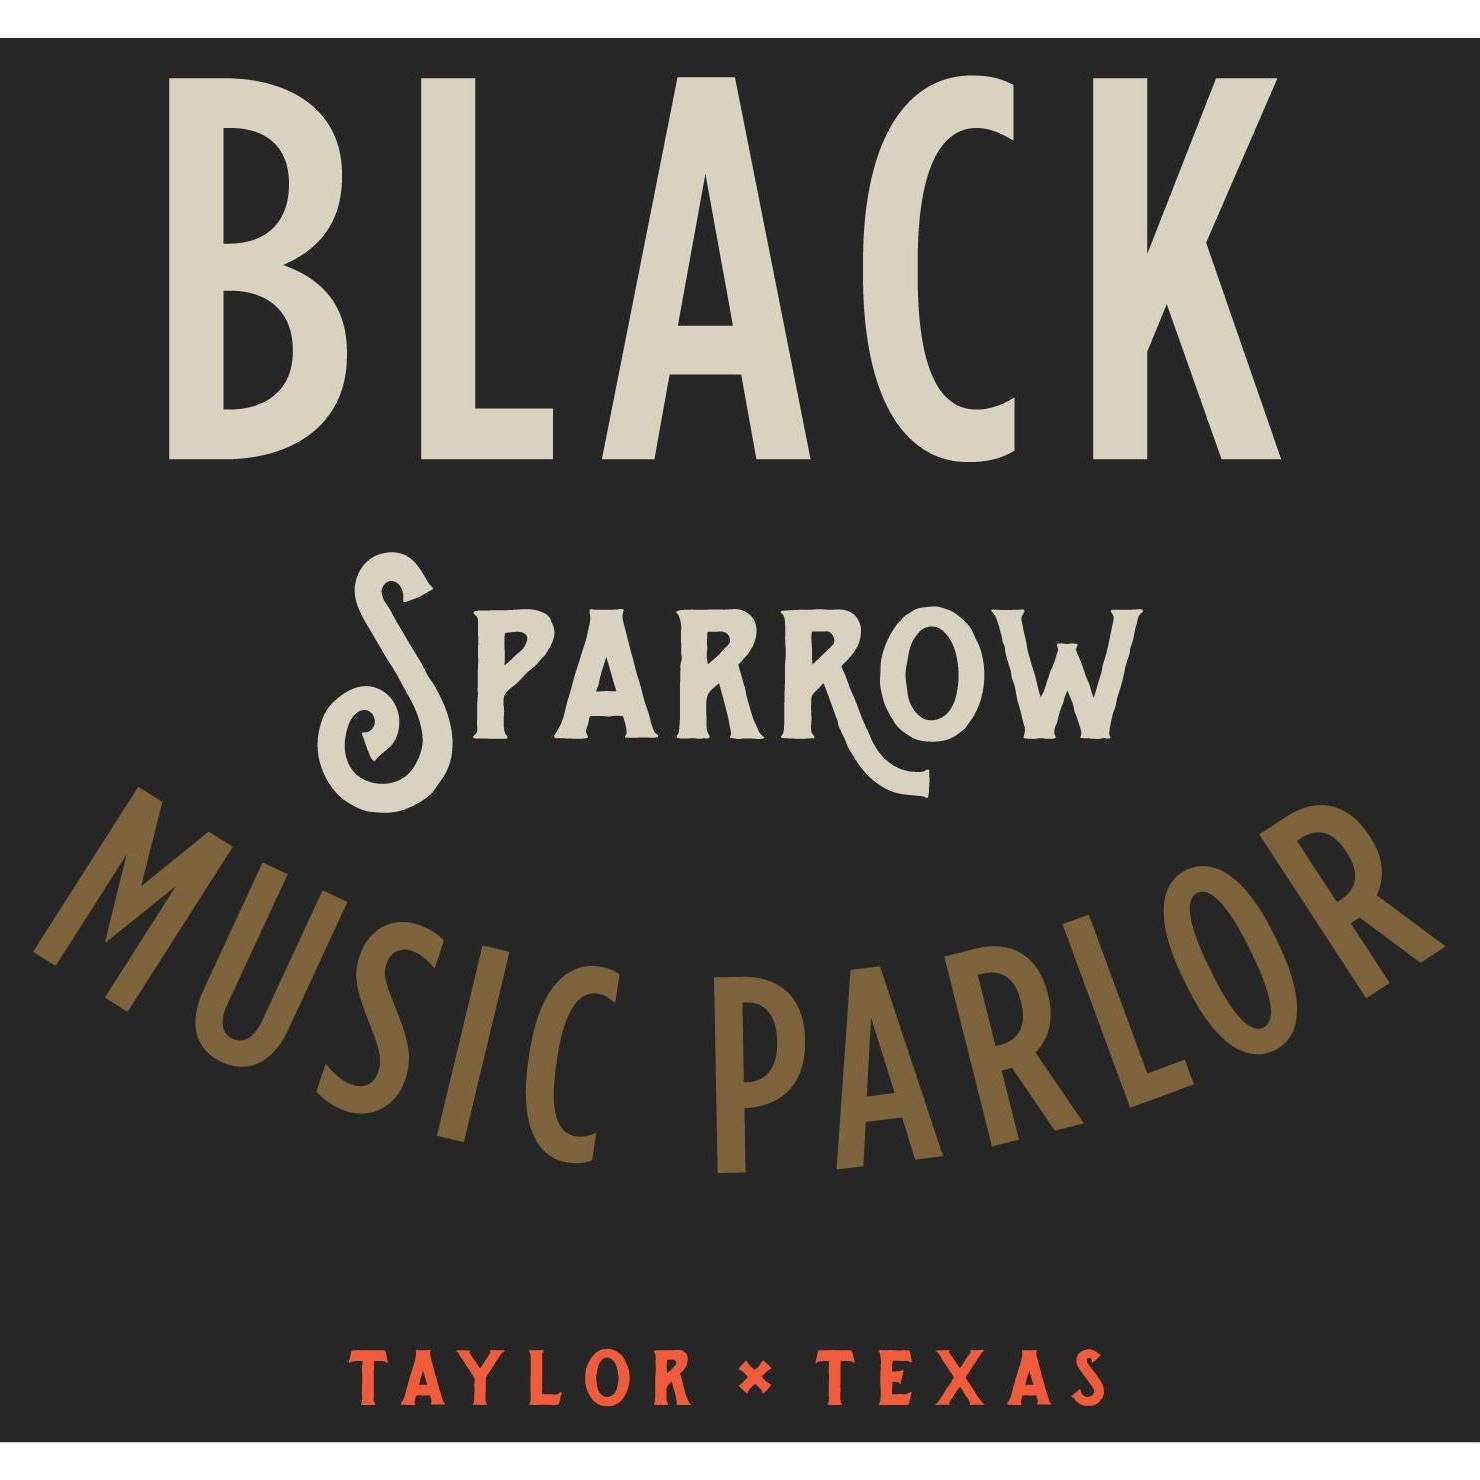 Hot Pickin 57s plays Black Sparrow Music Parlor